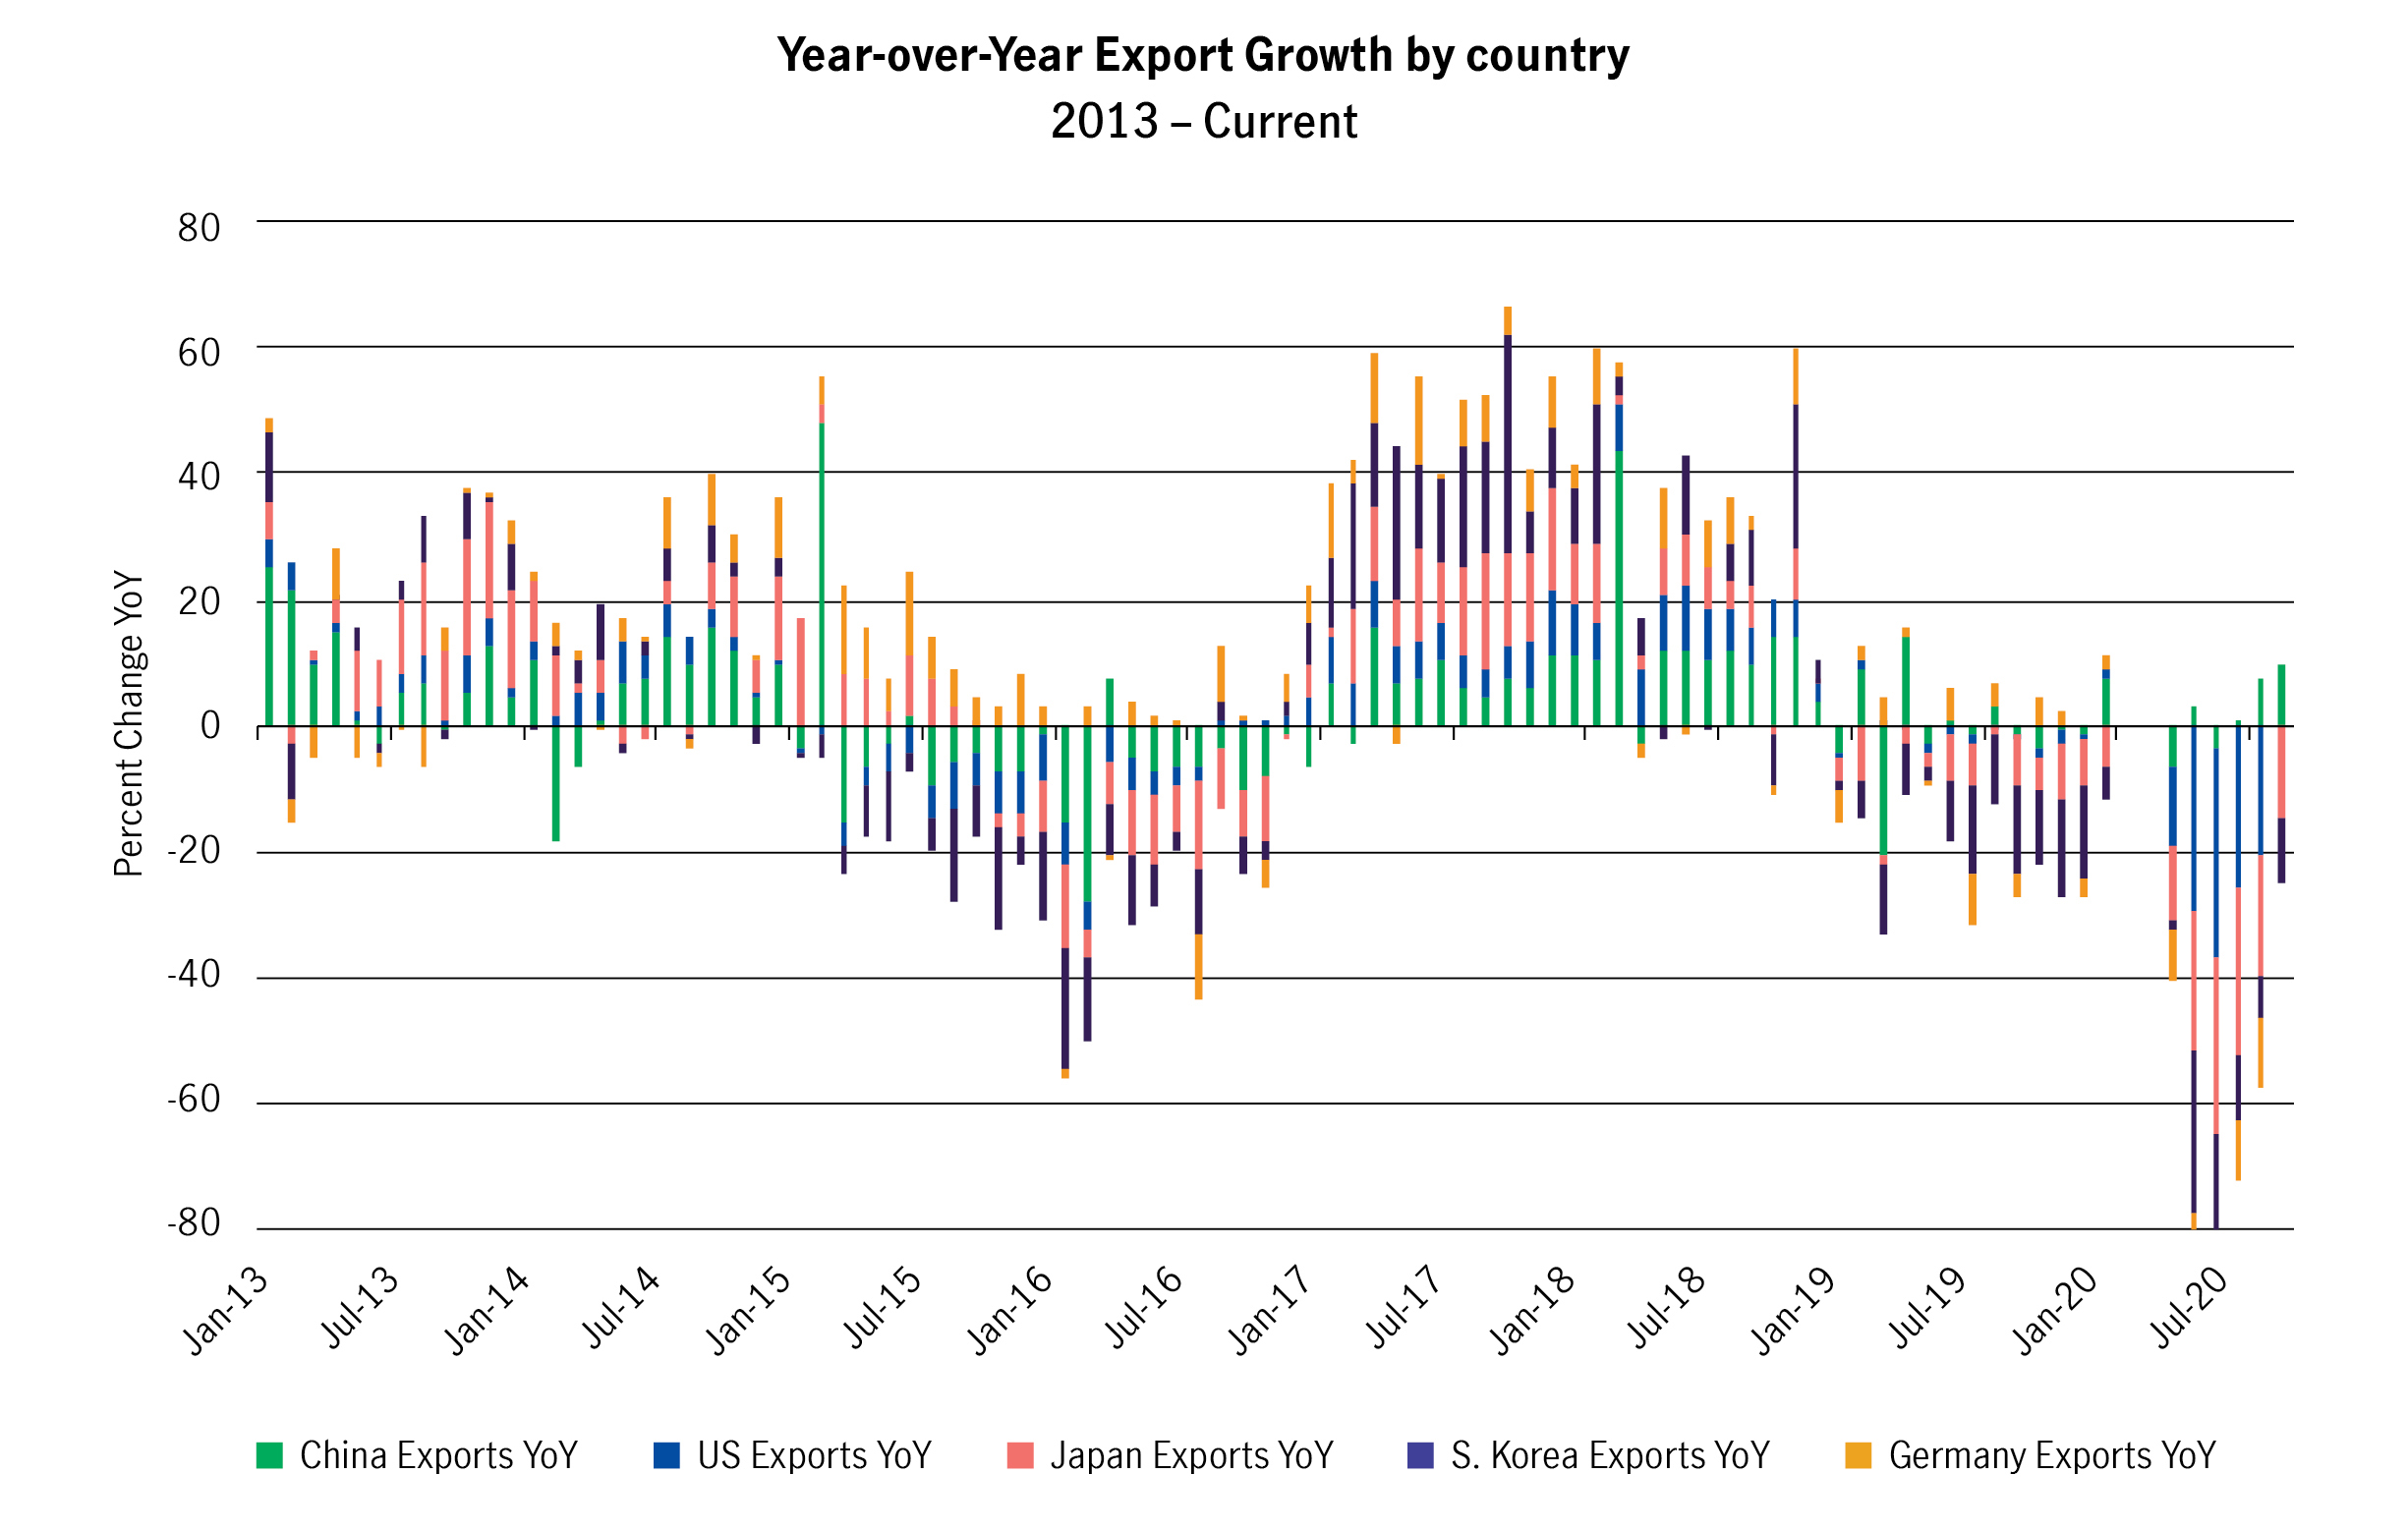 Export levels are improving, as Chinese exports move into positive territory. South Korean exports are also showing modest improvements.